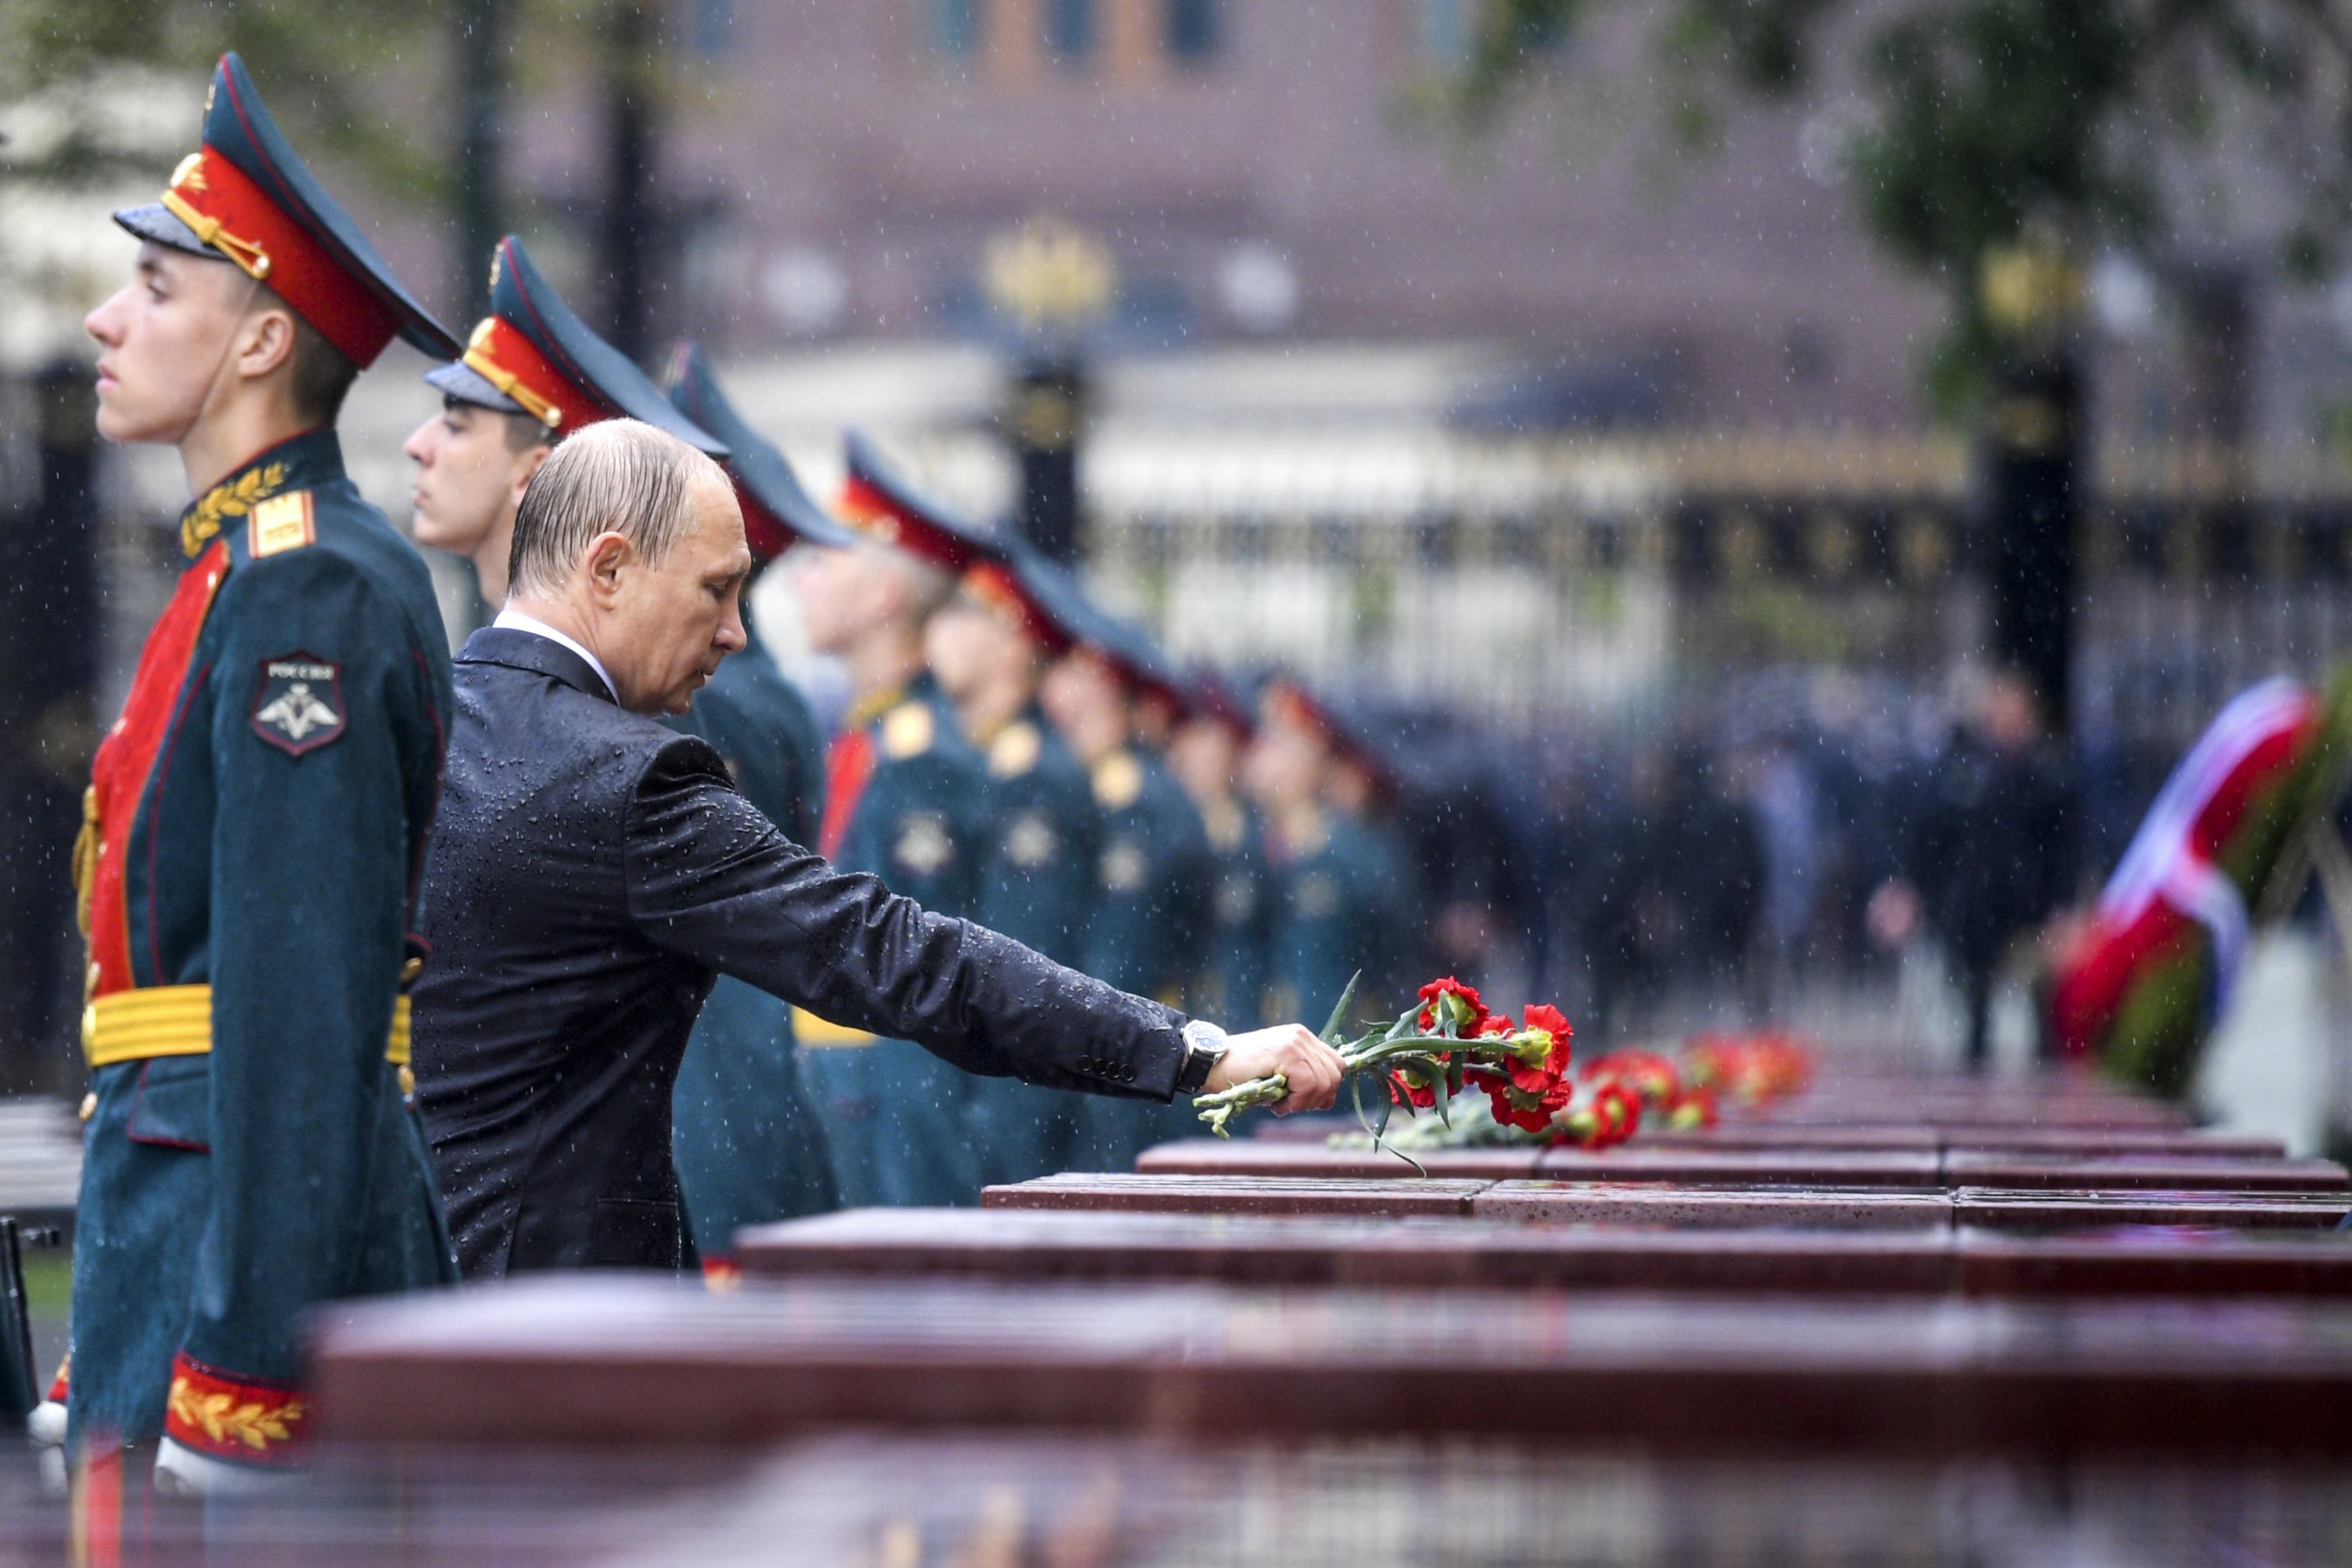 Russian President Vladimir Putin, second left, places flowers at a monument to cities-heroes as he takes part in a wreath laying ceremony to the Tomb of Unknown Soldier in pouring rain, in Moscow, Russia, Thursday, June 22, 2017, marking the 76th anniversary of the Nazi invasion of the Soviet Union. (Alexei Druzhinin/Sputnik, Kremlin Pool Photo via AP)